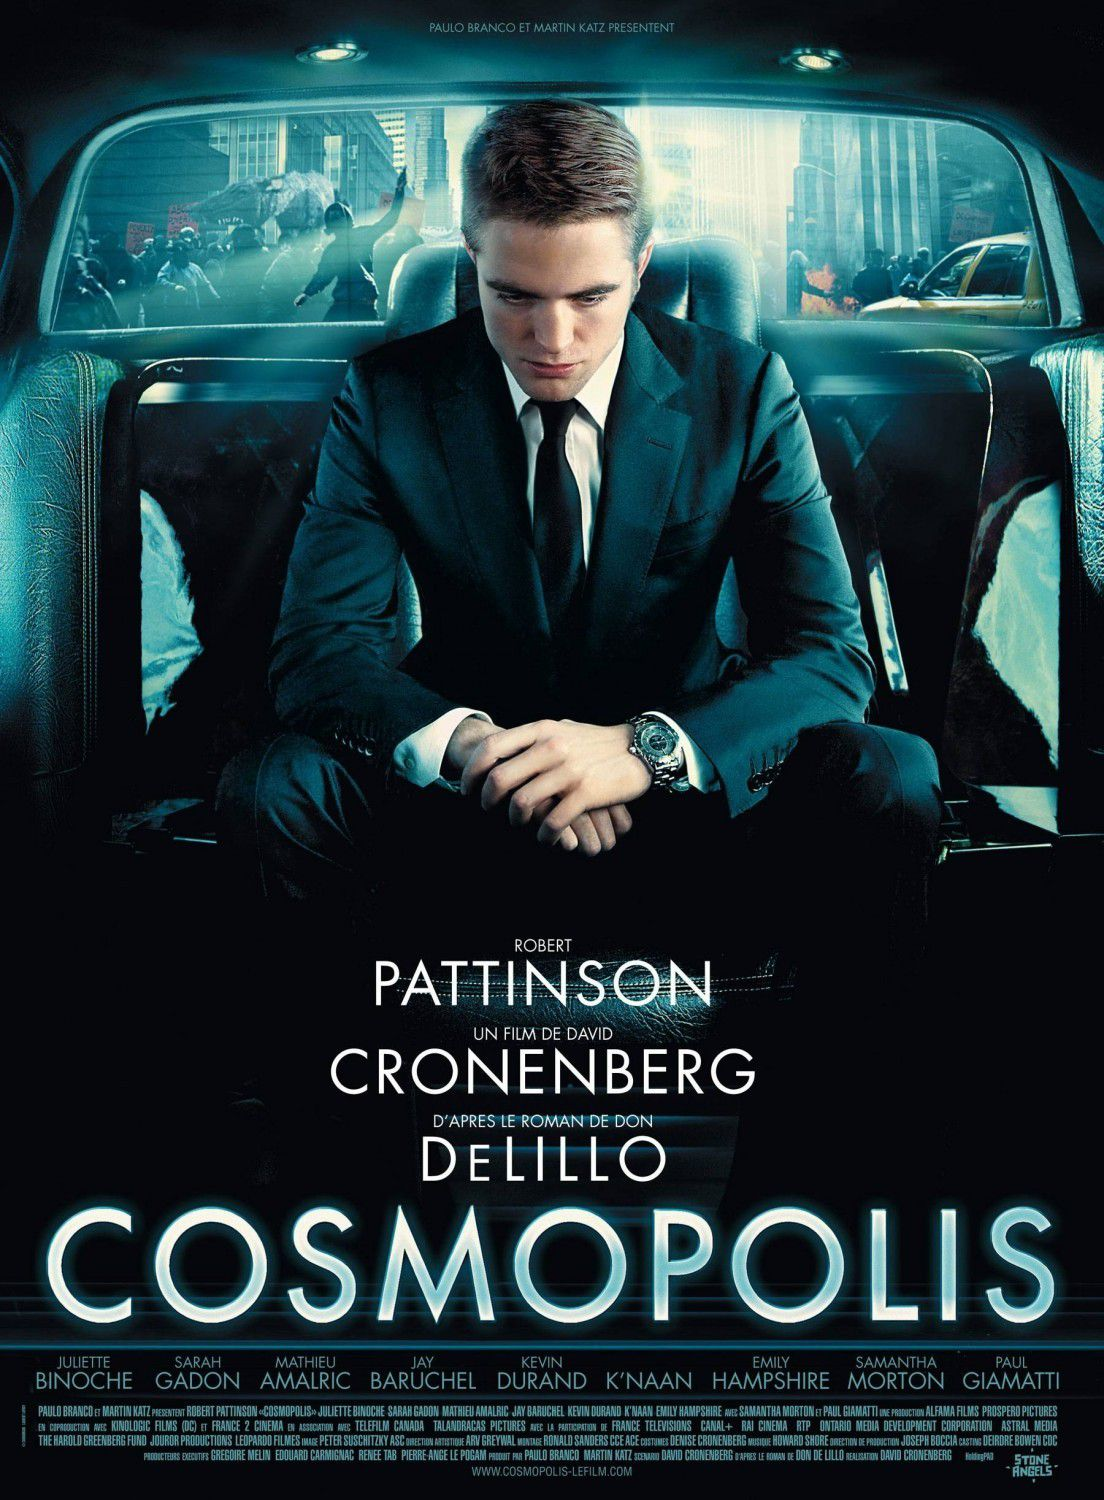 Cosmopolis - Film (2012) streaming VF gratuit complet